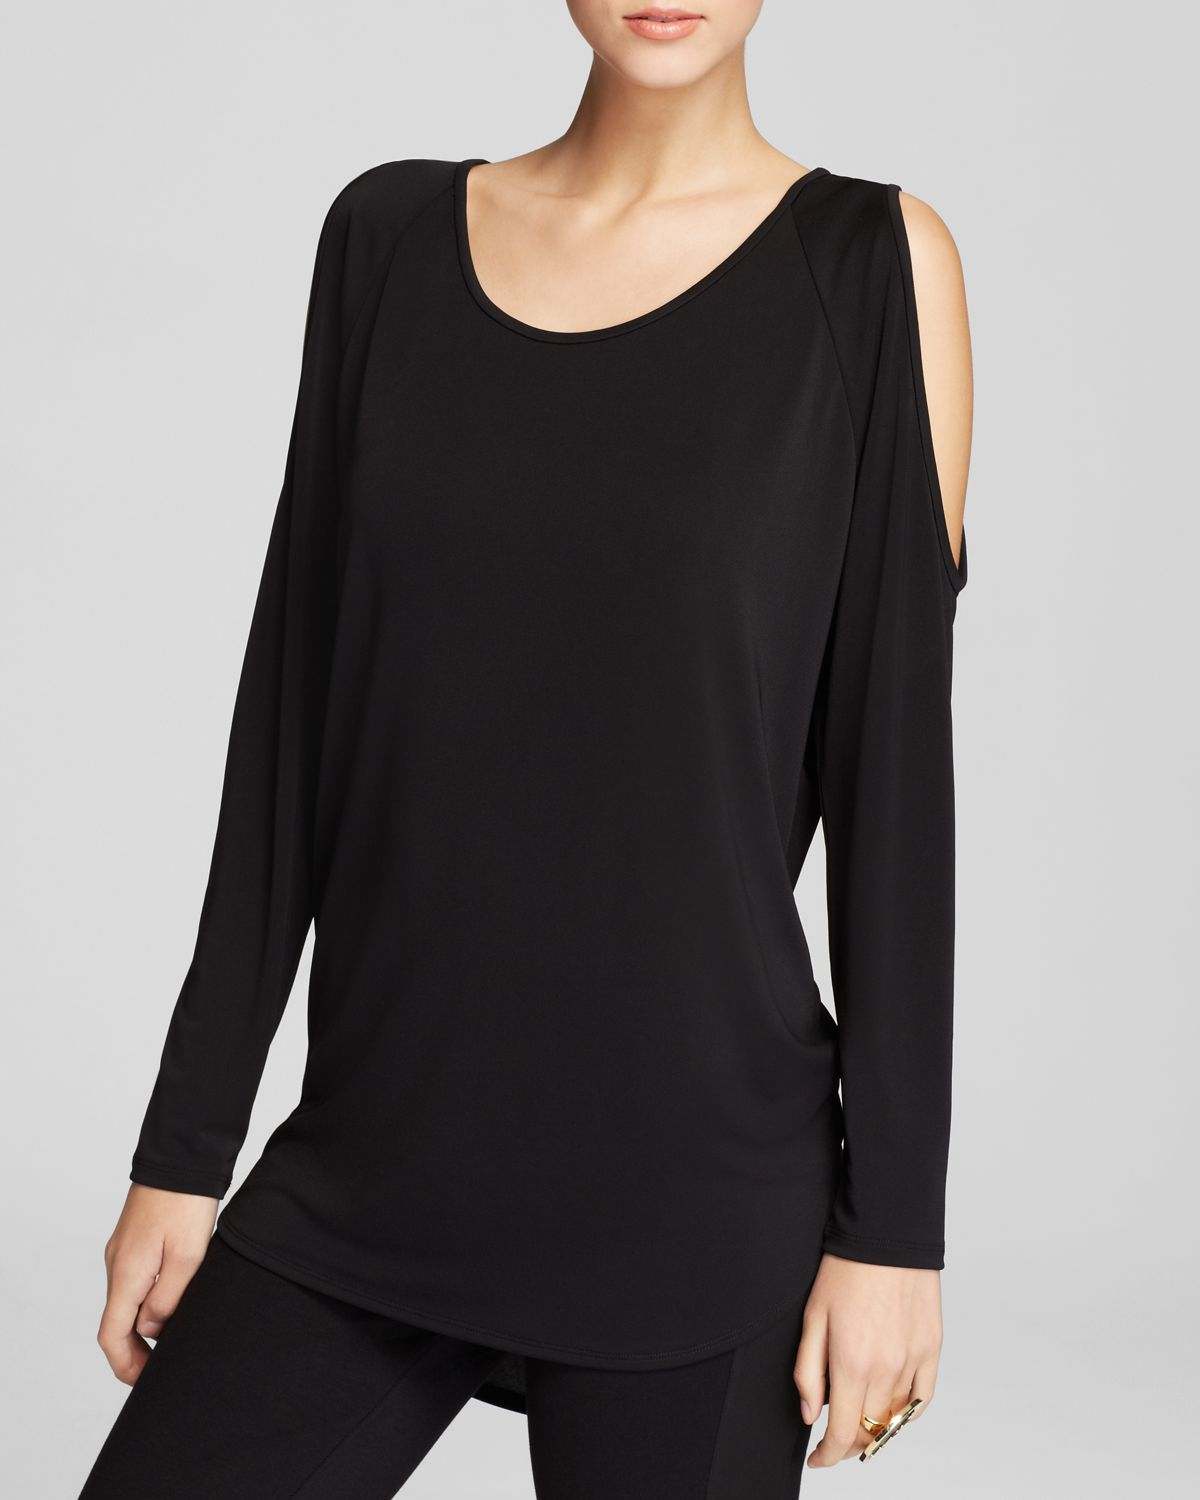 17c80f91592 DKNY - Black Cold Shoulder Scoop Neck Tee Bloomingdales Exclusive - Lyst